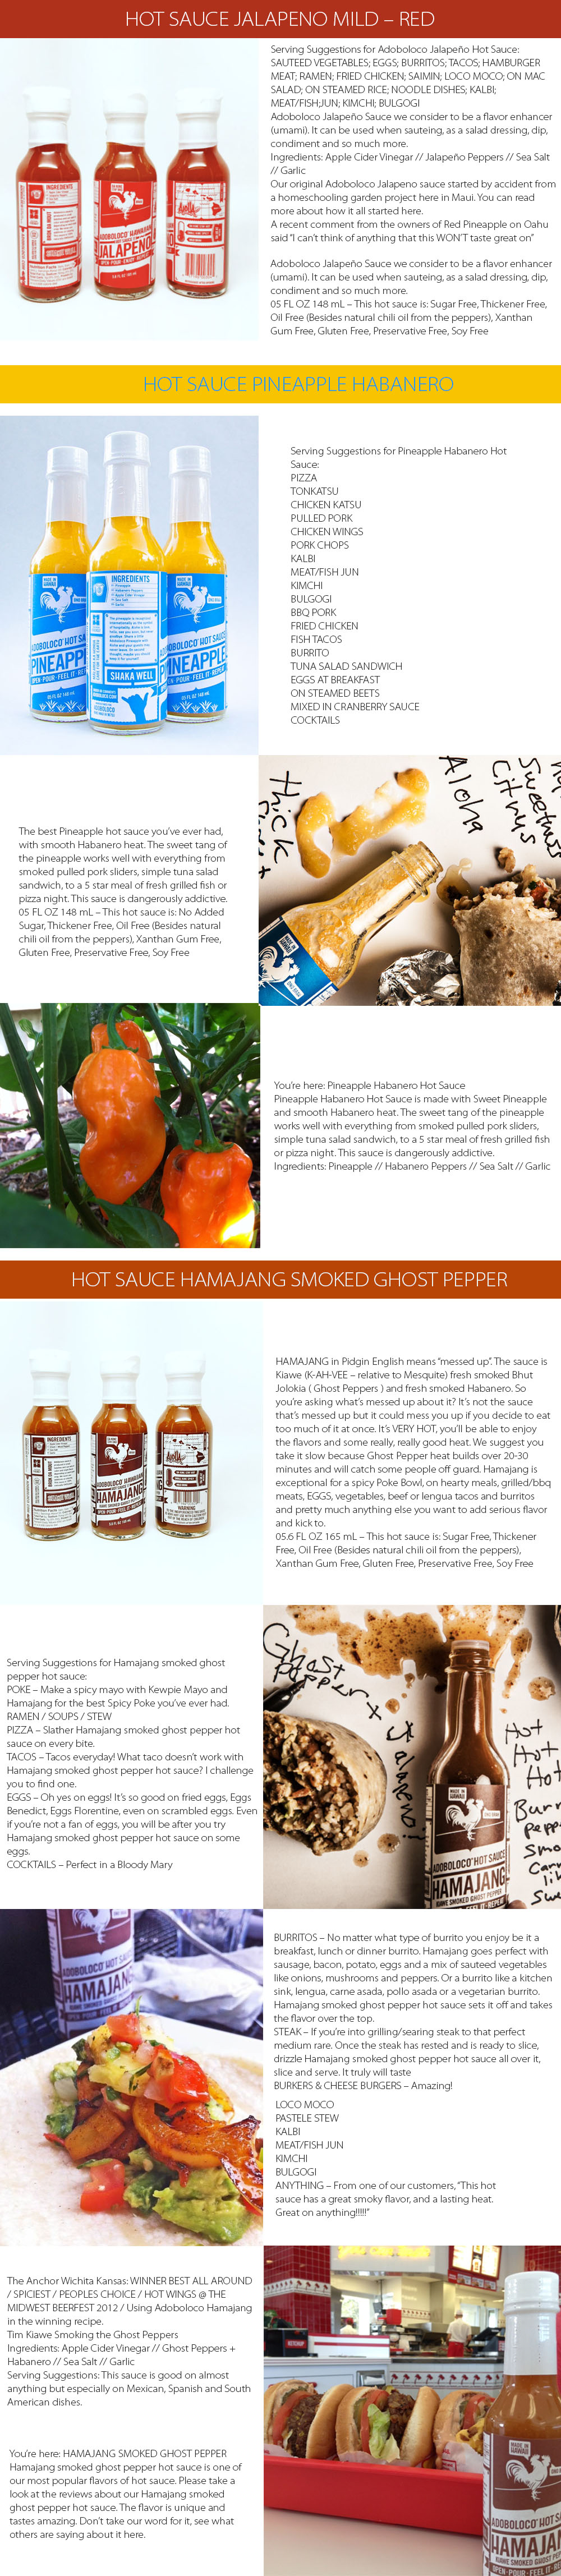 The Homemade Hot Sauce Kit Uniquely Flavorful Hot Sauces At Home